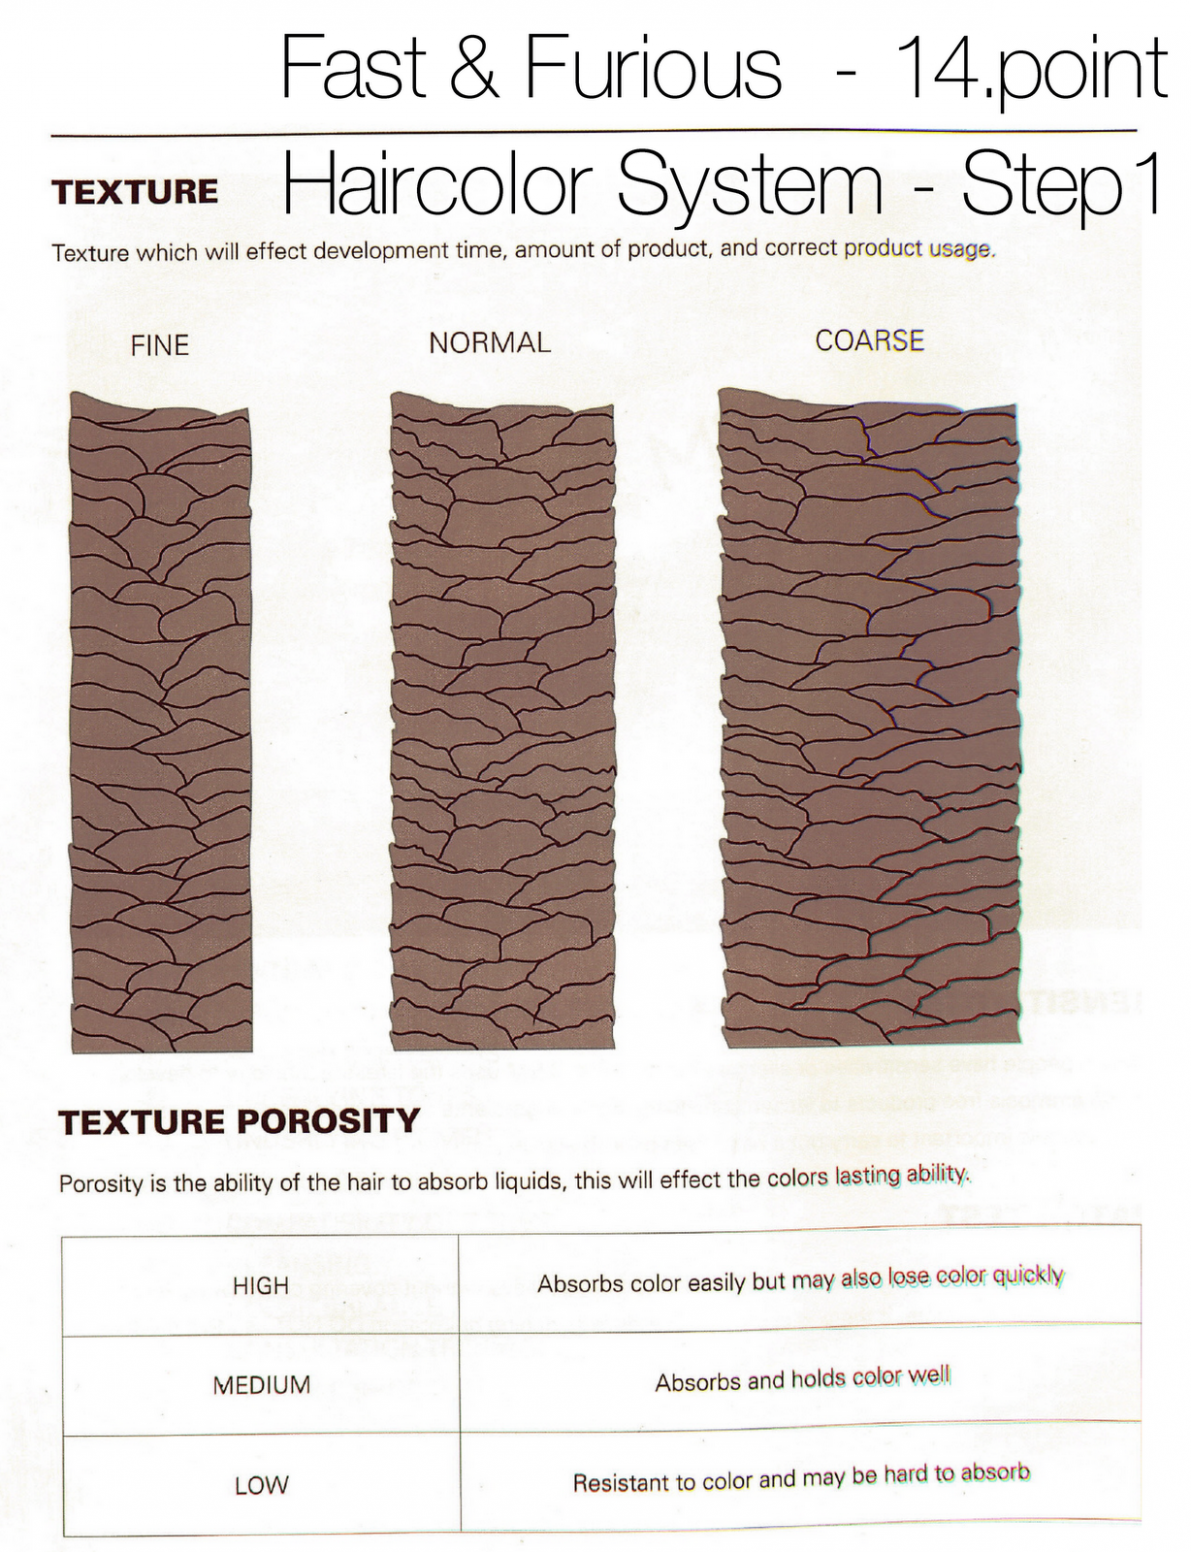 Killerstrands hair clinic: follow the colorbrick road: how texture